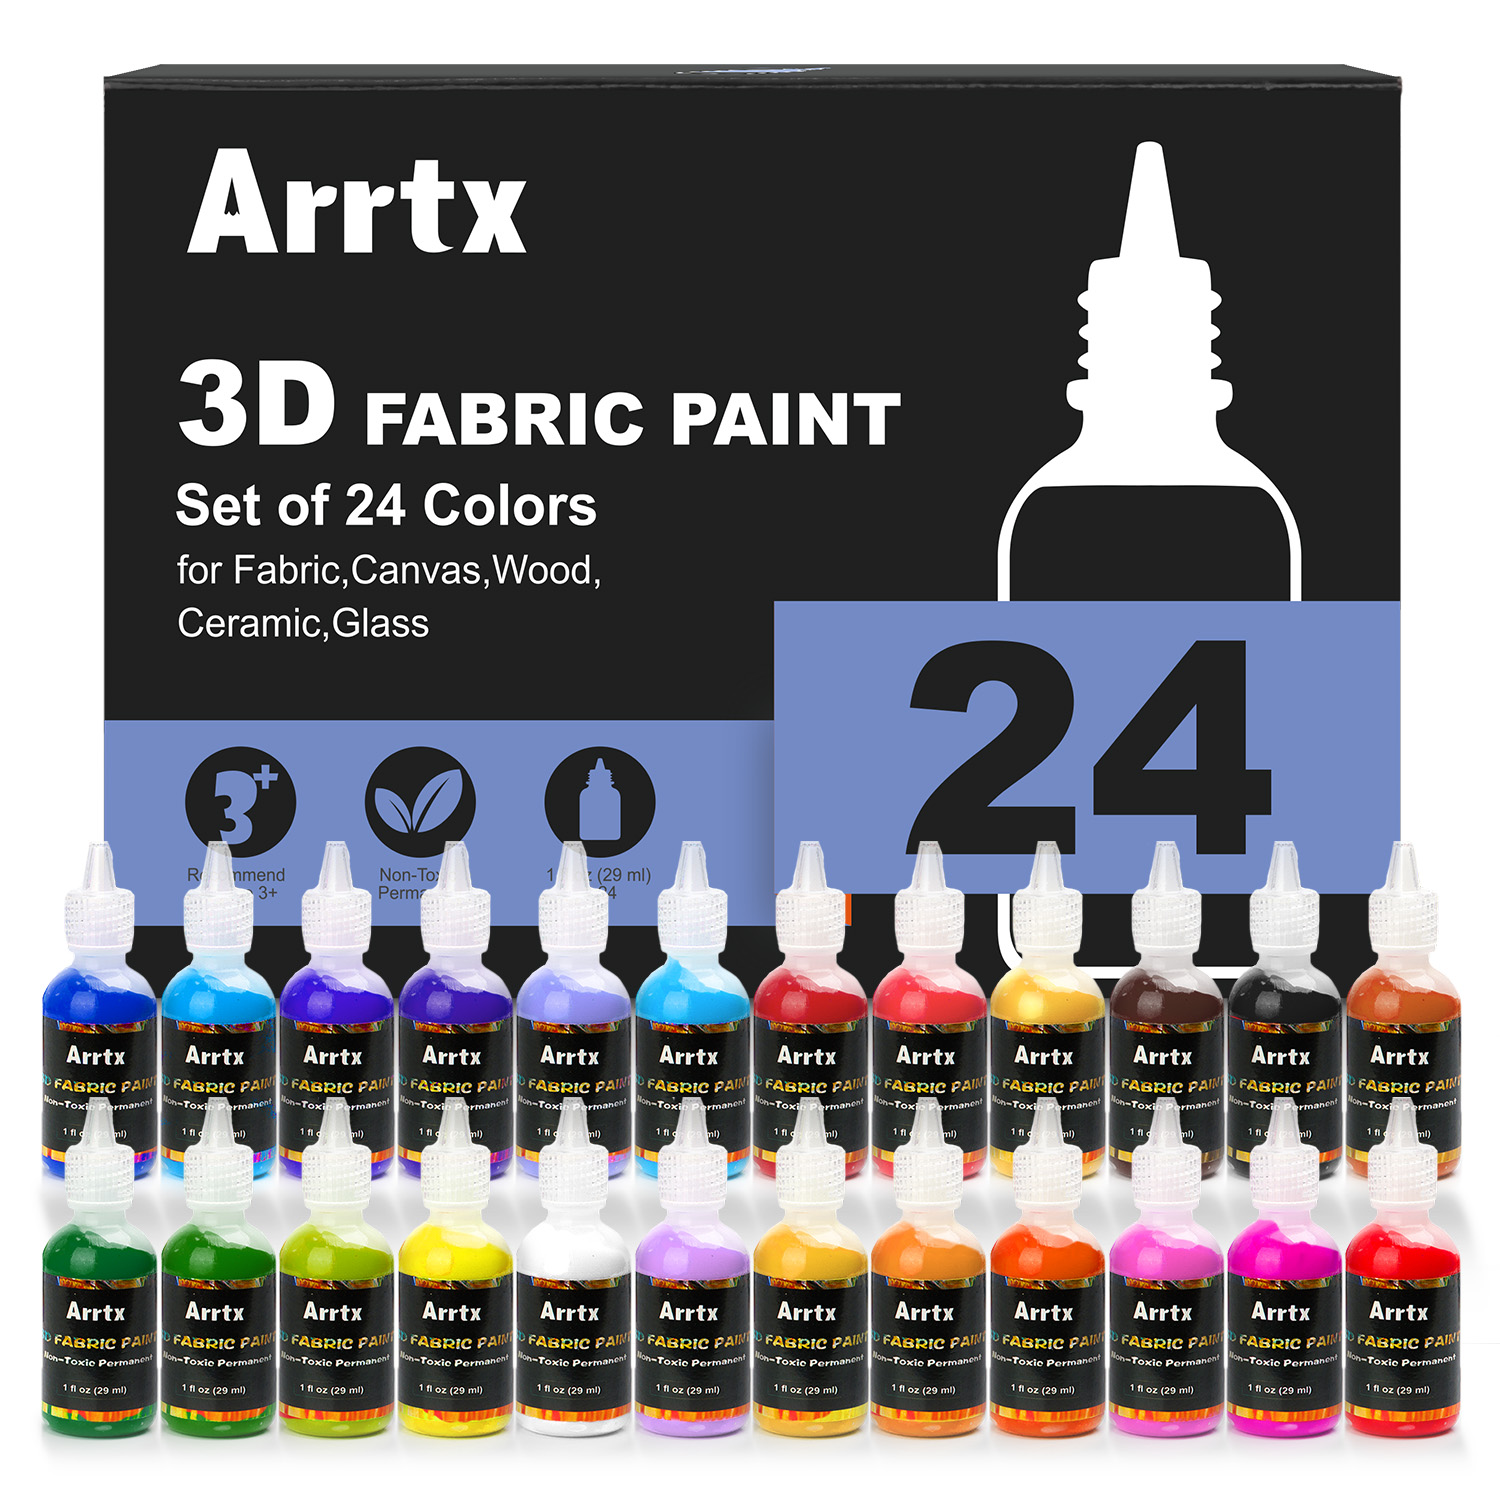 Arrtx 24 Assorted Colors 3D Fabric Paint 29ml/tube Not toxic Paint Application for Wood/Ceramic/Glass/Metal Painting